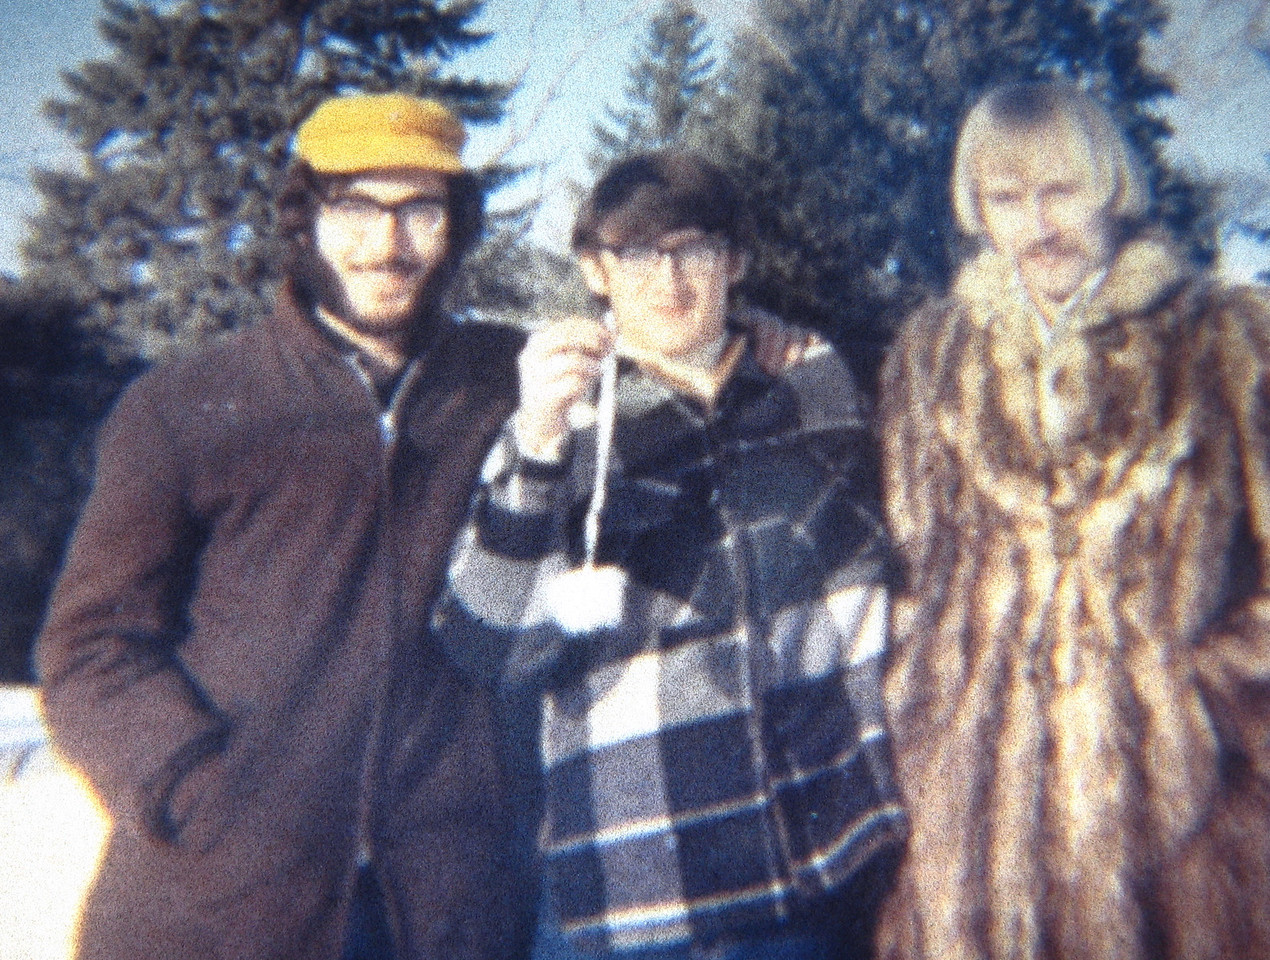 1971 Sioux City, IA Lee Samore, Jeff Kirby and Mark Miller in driveway of 3630 Jennings St.